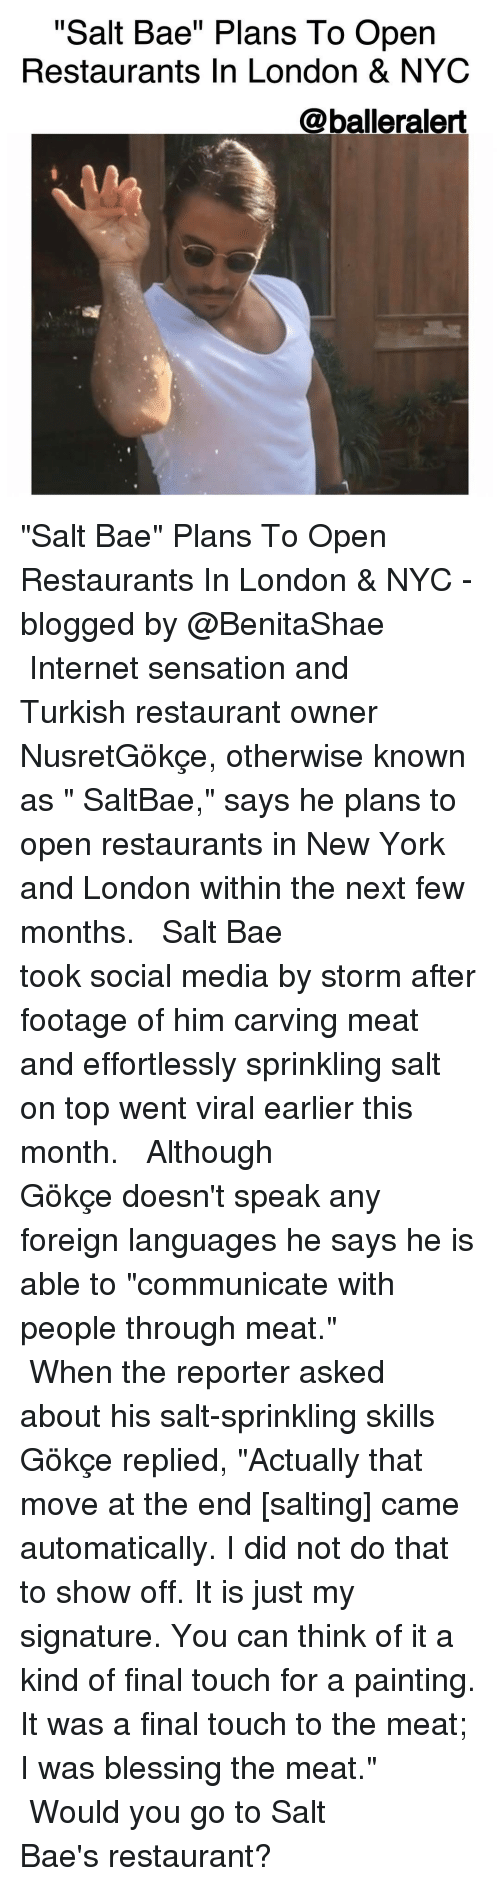 """My Signature: """"Salt Bae"""" Plans To Open  Restaurants In London & NYC  @balleralert """"Salt Bae"""" Plans To Open Restaurants In London & NYC -blogged by @BenitaShae ⠀⠀⠀⠀⠀⠀⠀⠀⠀ ⠀⠀⠀⠀⠀⠀⠀⠀⠀ Internet sensation and Turkish restaurant owner NusretGökçe, otherwise known as """" SaltBae,"""" says he plans to open restaurants in New York and London within the next few months. ⠀⠀⠀⠀⠀⠀⠀⠀⠀ ⠀⠀⠀⠀⠀⠀⠀⠀⠀ Salt Bae took social media by storm after footage of him carving meat and effortlessly sprinkling salt on top went viral earlier this month. ⠀⠀⠀⠀⠀⠀⠀⠀⠀ ⠀⠀⠀⠀⠀⠀⠀⠀⠀ Although Gökçe doesn't speak any foreign languages he says he is able to """"communicate with people through meat."""" ⠀⠀⠀⠀⠀⠀⠀⠀⠀ ⠀⠀⠀⠀⠀⠀⠀⠀⠀ When the reporter asked about his salt-sprinkling skills Gökçe replied, """"Actually that move at the end [salting] came automatically. I did not do that to show off. It is just my signature. You can think of it a kind of final touch for a painting. It was a final touch to the meat; I was blessing the meat."""" ⠀⠀⠀⠀⠀⠀⠀⠀⠀ ⠀⠀⠀⠀⠀⠀⠀⠀⠀ Would you go to Salt Bae's restaurant?"""